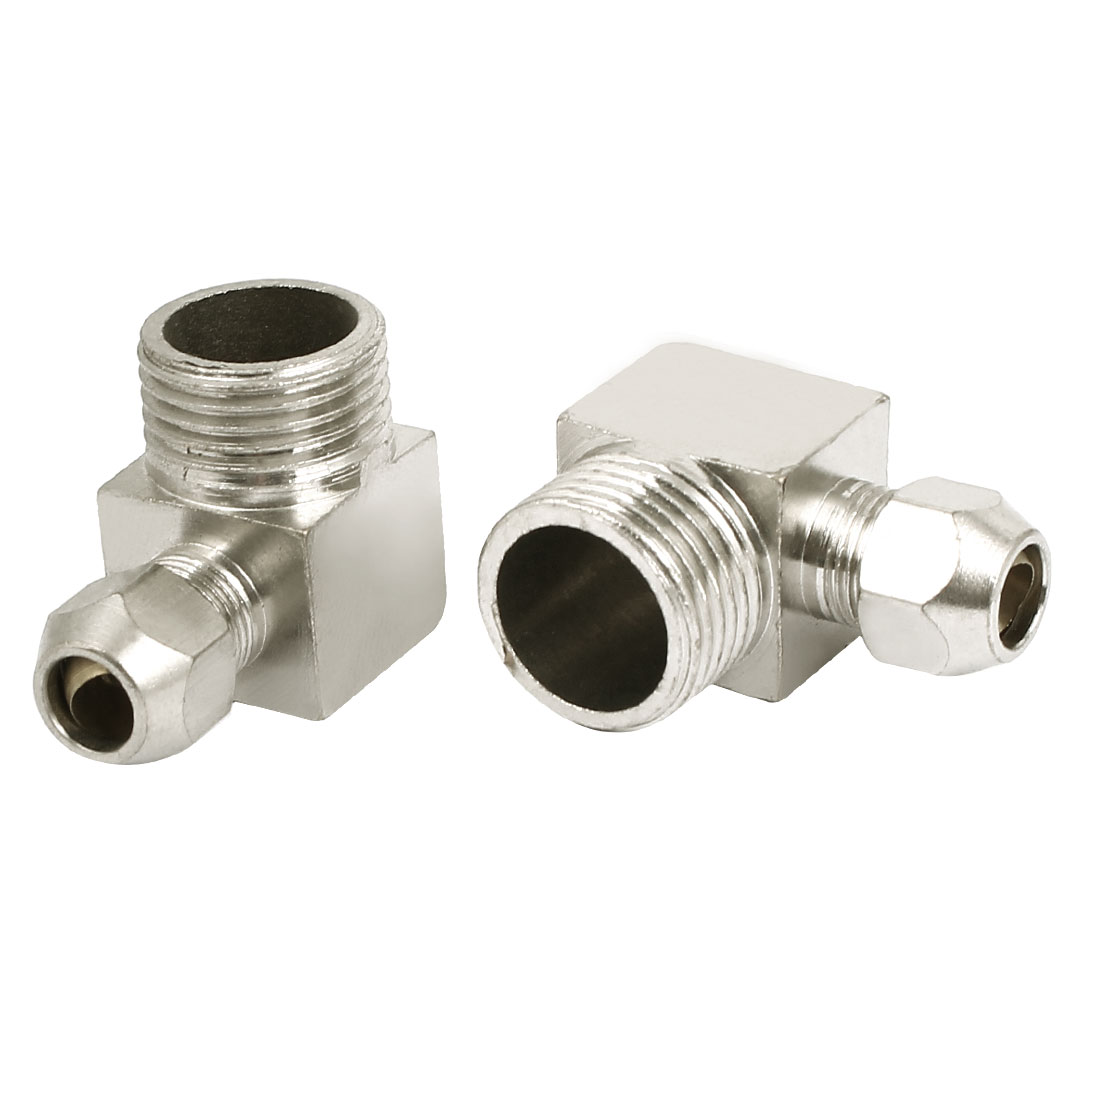 1/2BSP Male Thread L Type Air Quick Release Coupler Fitting Connector 2Pcs